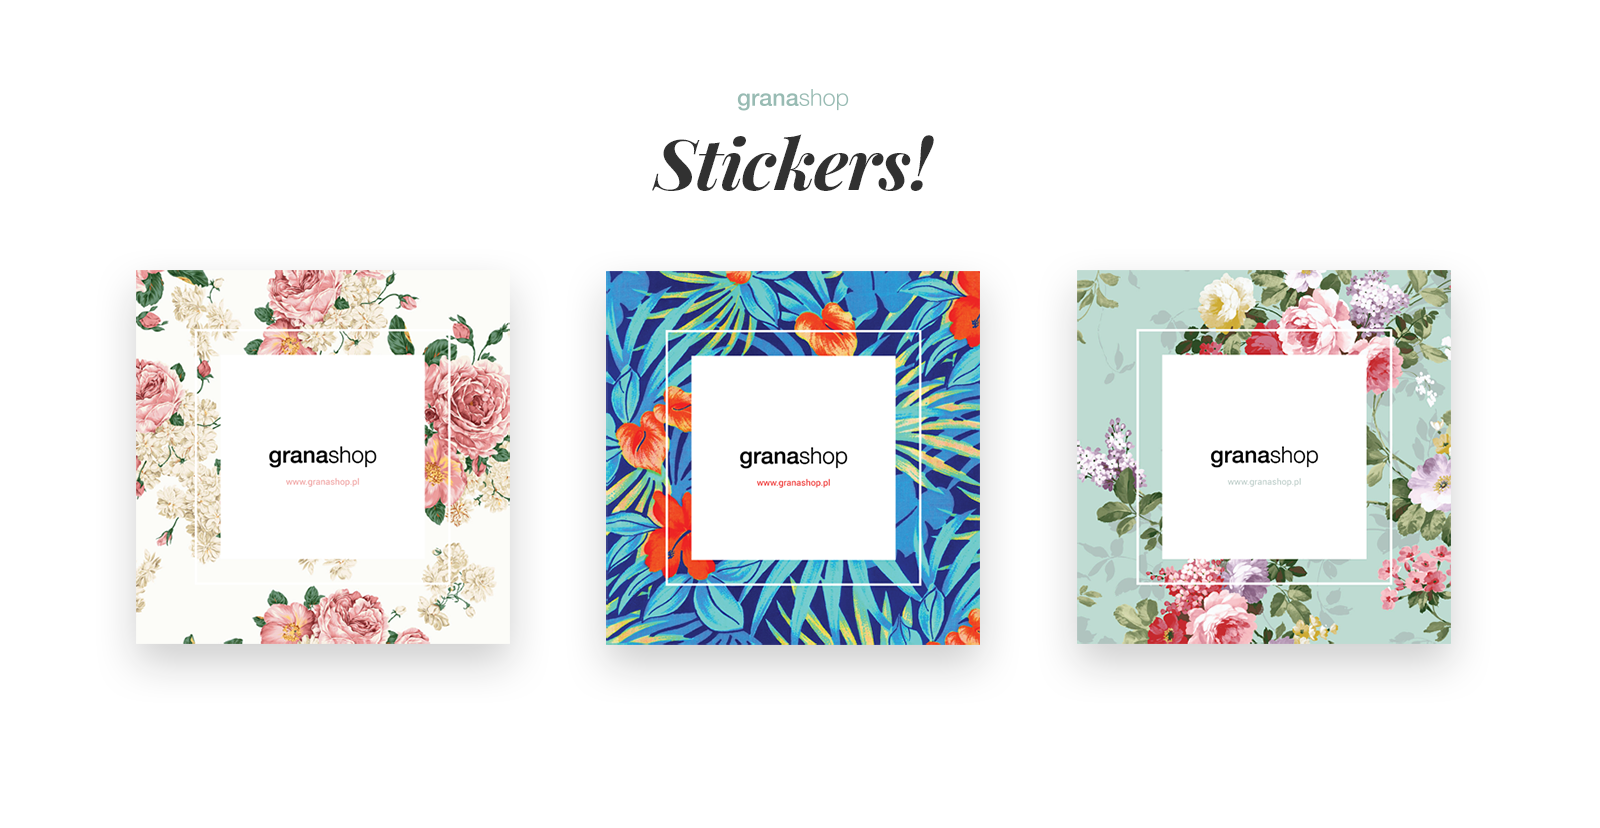 Stickers granashop